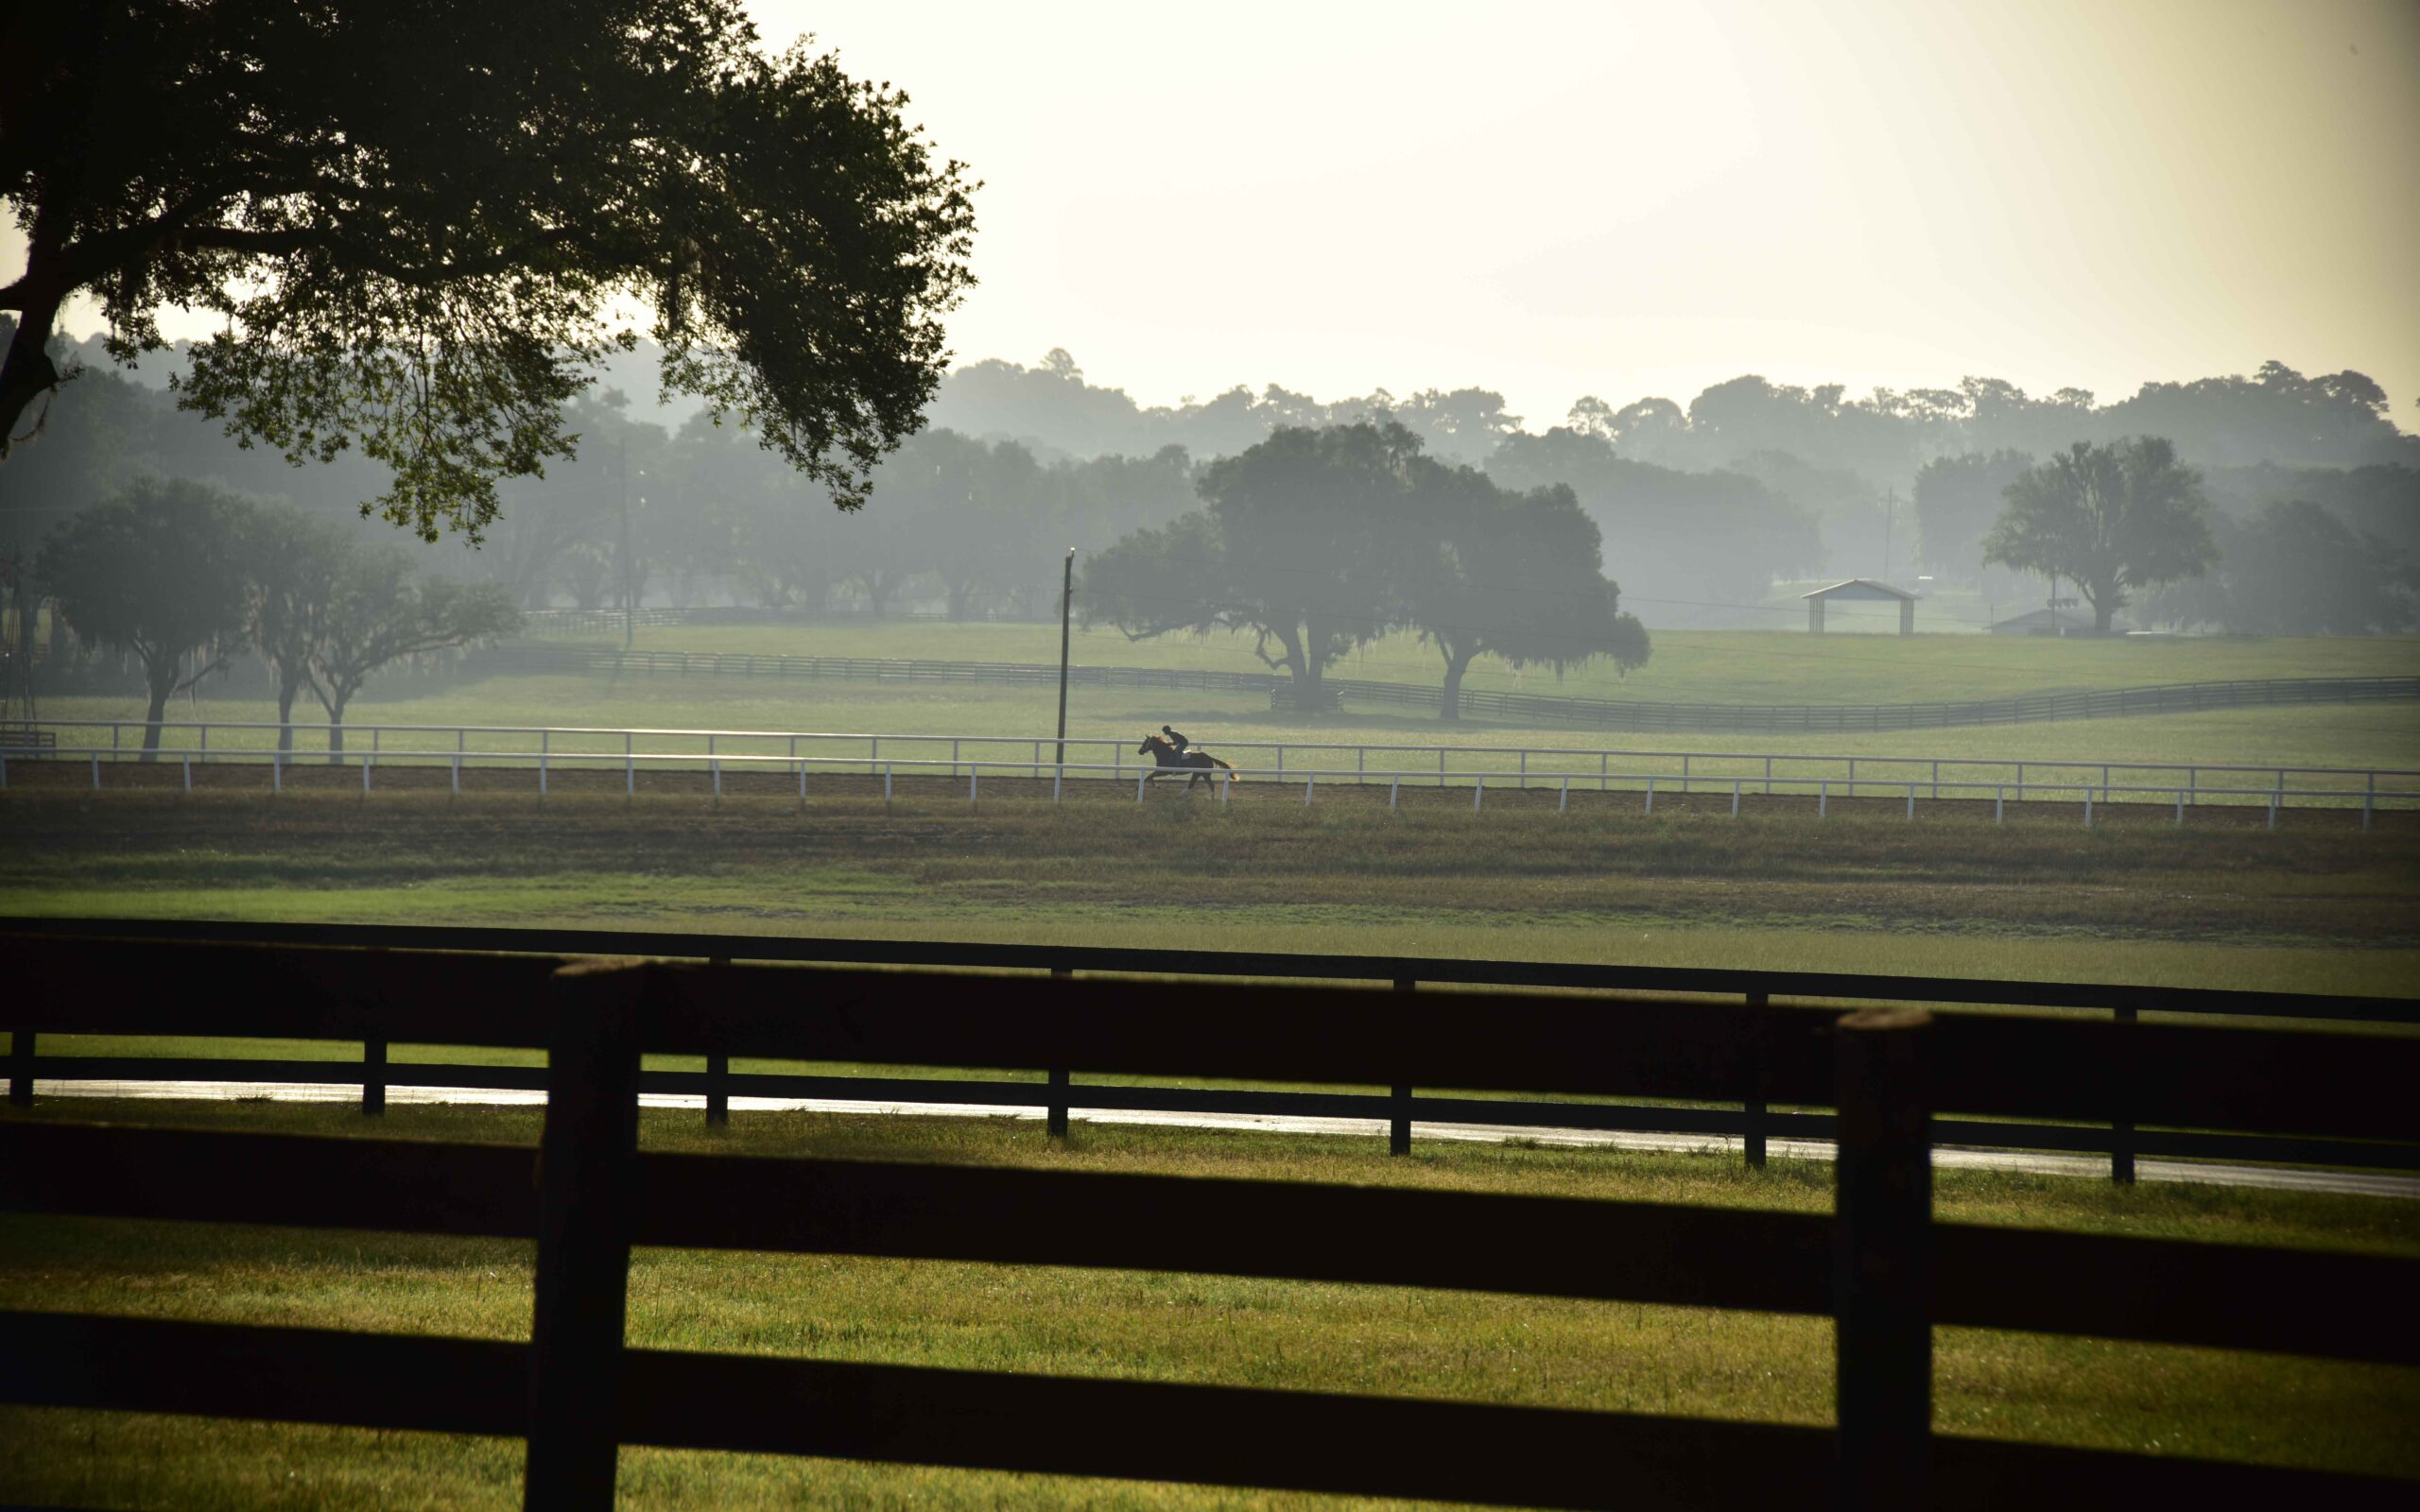 A jockey riding a horse on the track at Bridlewood Farm